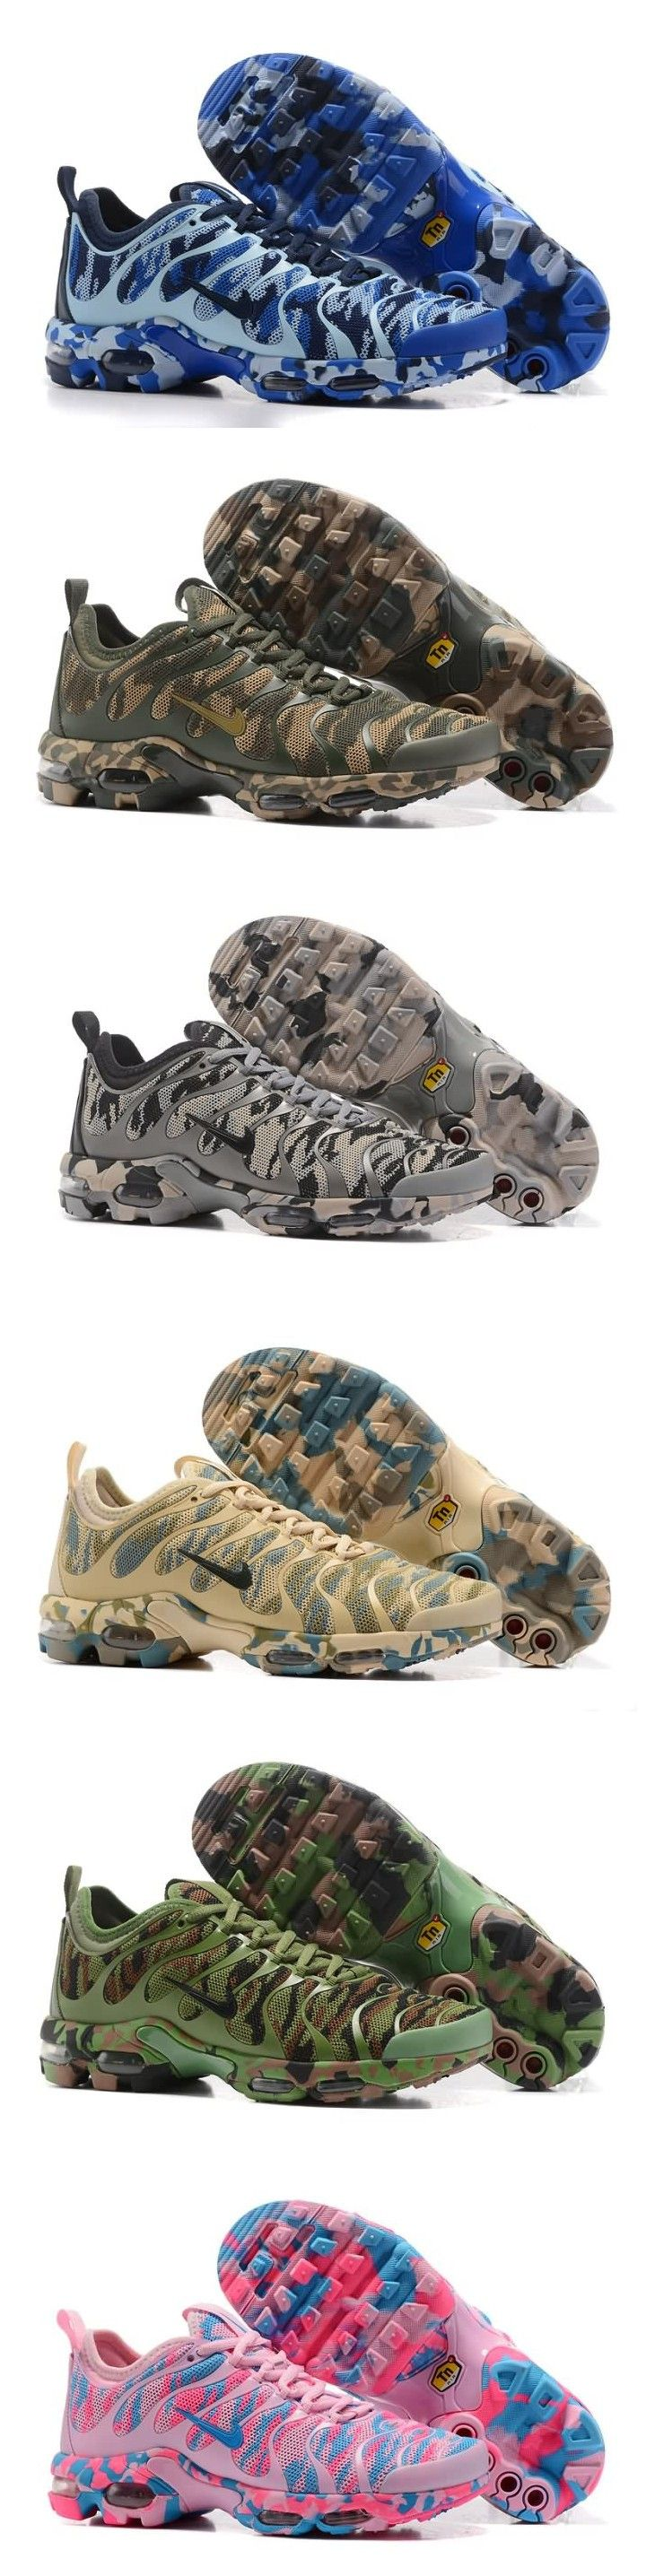 351889cc277 Nike Air Max Plus TN Ultra Camouflage Unisex shoes Free Shipping 36-46  WhatsApp 8613328373859